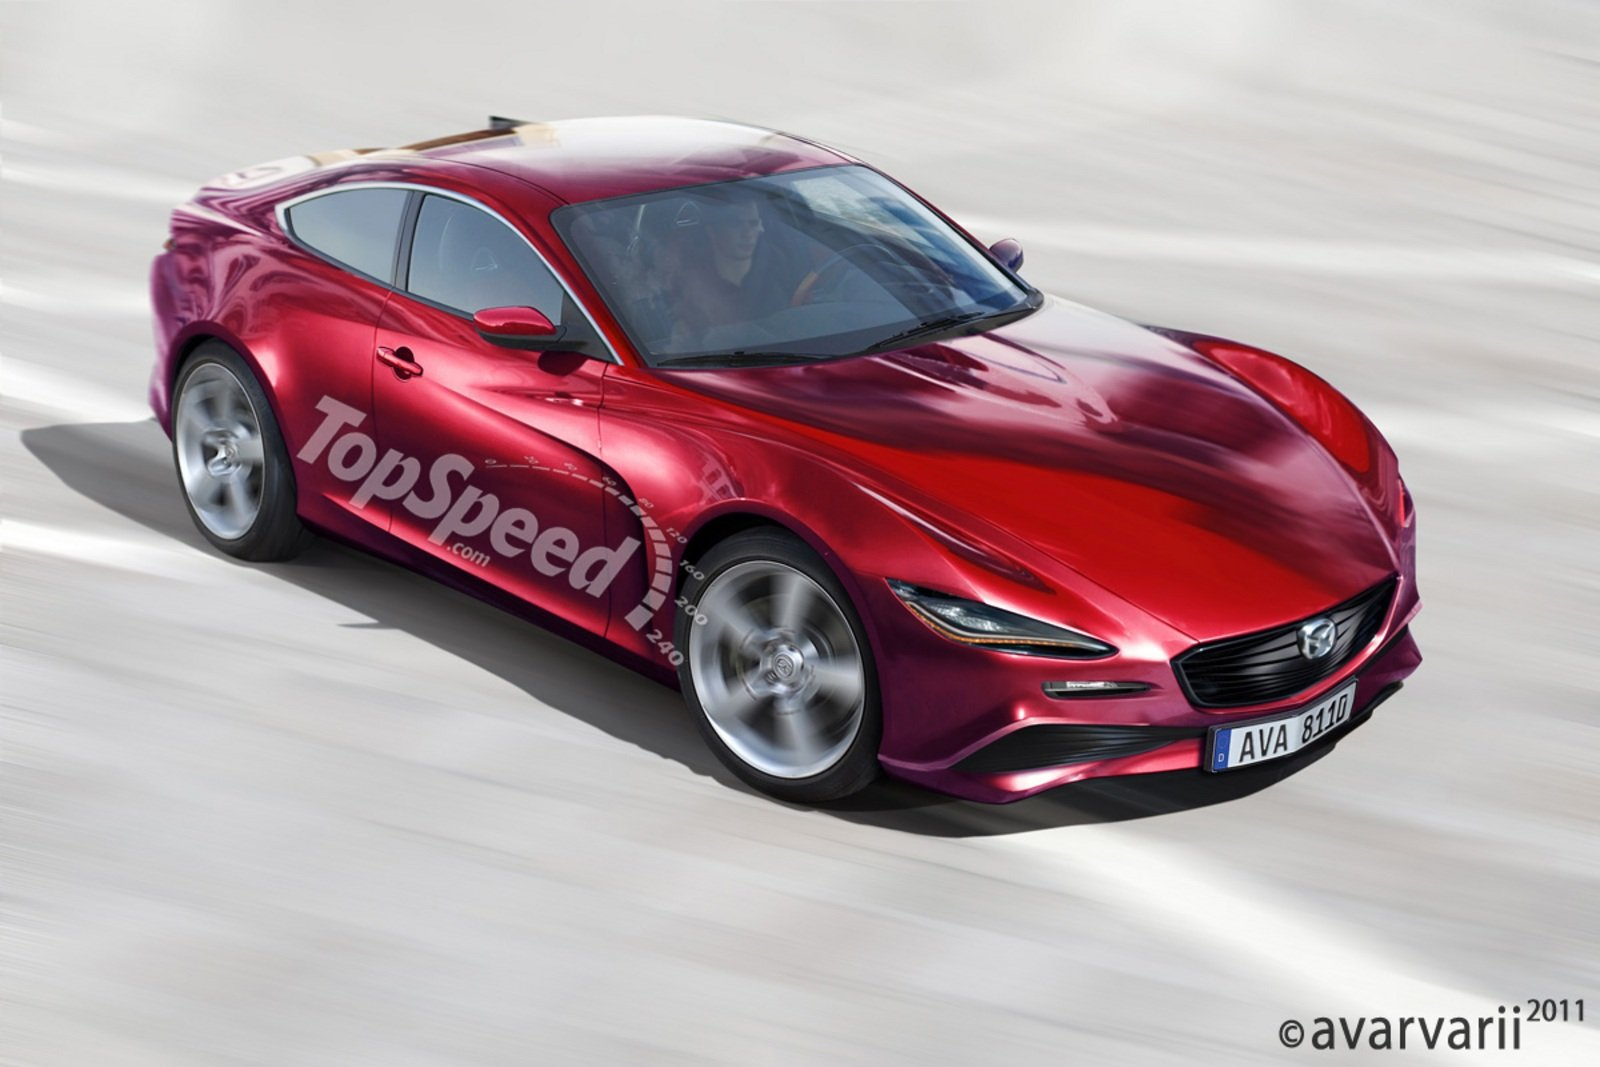 Mazda Rx7 Reviews Specs Prices Photos And Videos Top Speed 1991 Engine Diagram Rx 9 Concept Rumored For 2017 With A Production Model In 2020